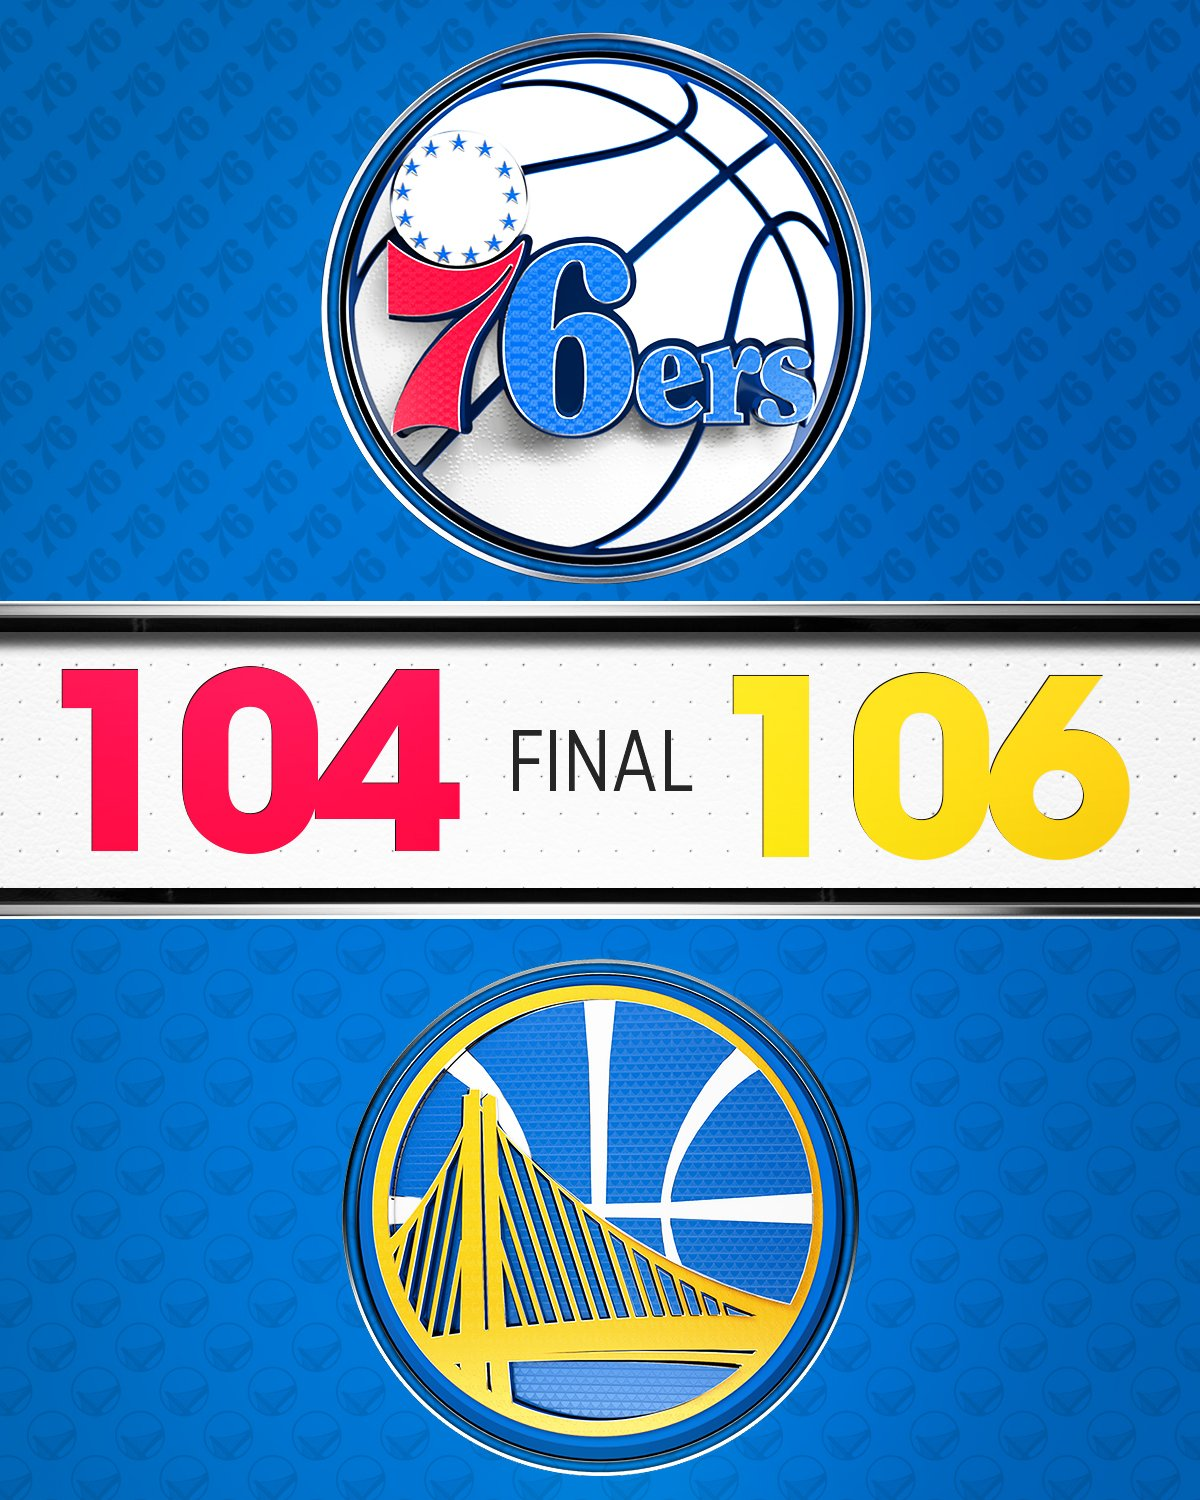 Golden State overcame a 16-point deficit to avoid losing 4 straight.  *exhale Warriors fans* https://t.co/ZItGg6WsFA